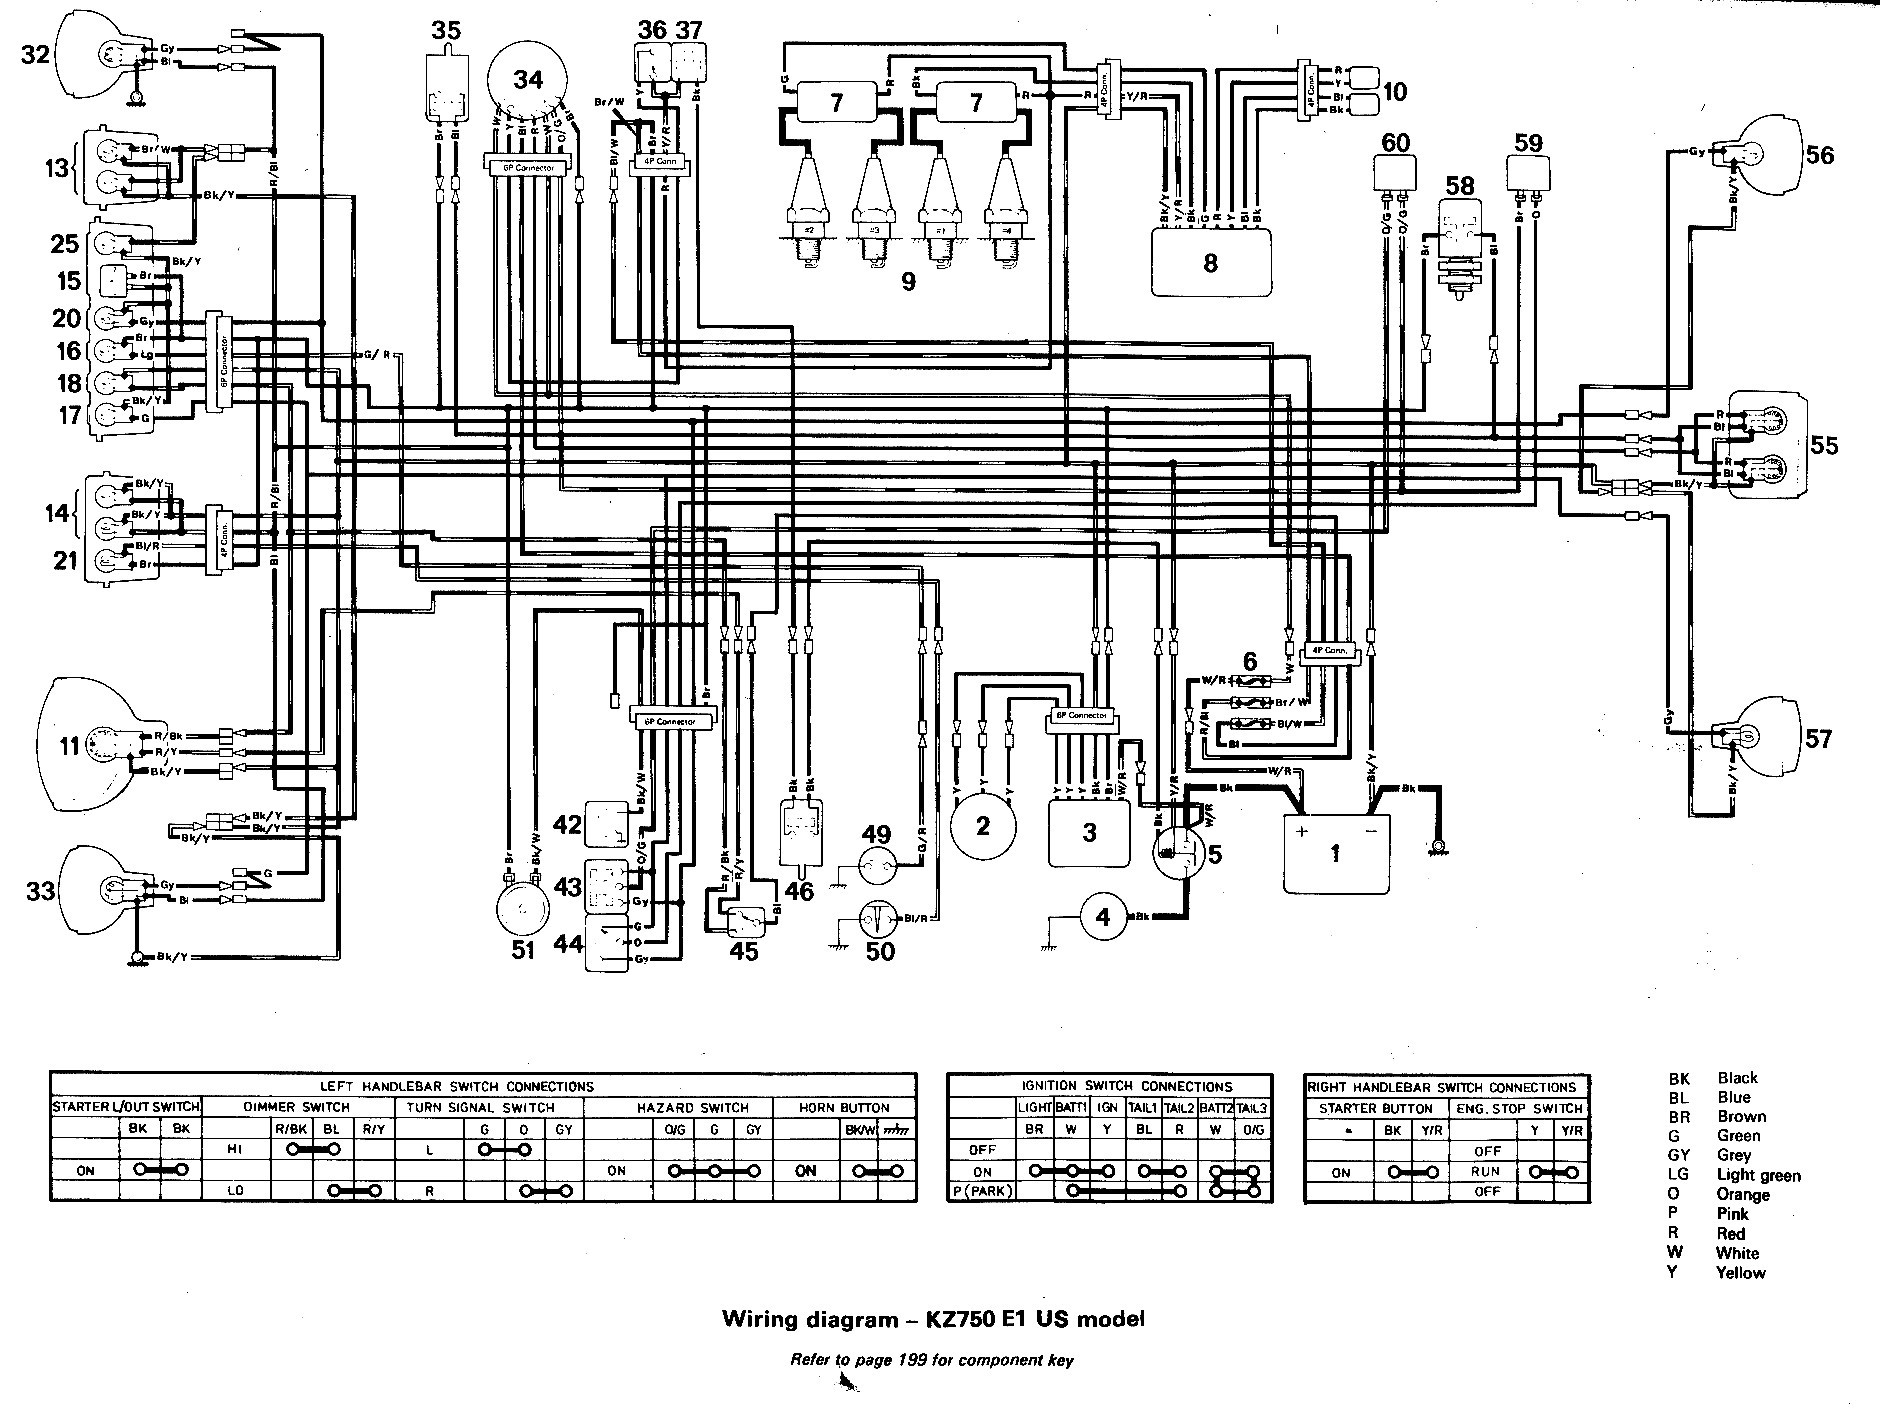 xj650 wiring diagram eeu jouwleidraad nl \u2022 C7500 Brake Light Wiring Diagram yamaha seca wiring diagram free picture schematic wiring diagram rh 42 ludothek worb ch xj650 bobber wiring diagram yamaha xj650 wiring diagram